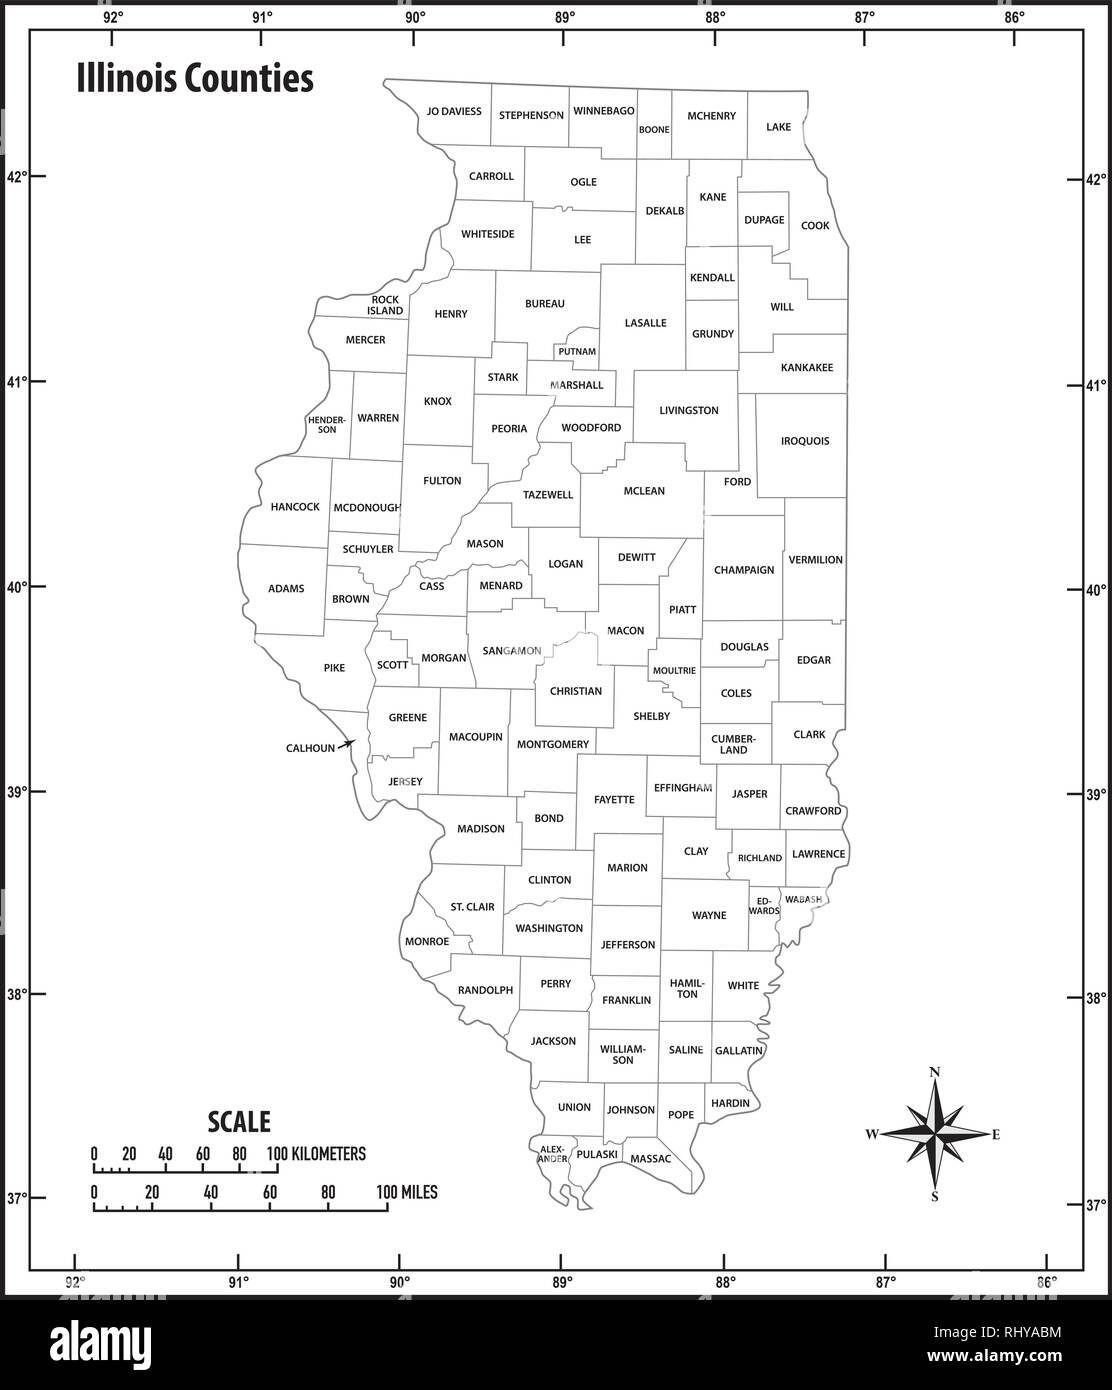 Illinois state outline administrative and political vector map in black and white - Stock Vector